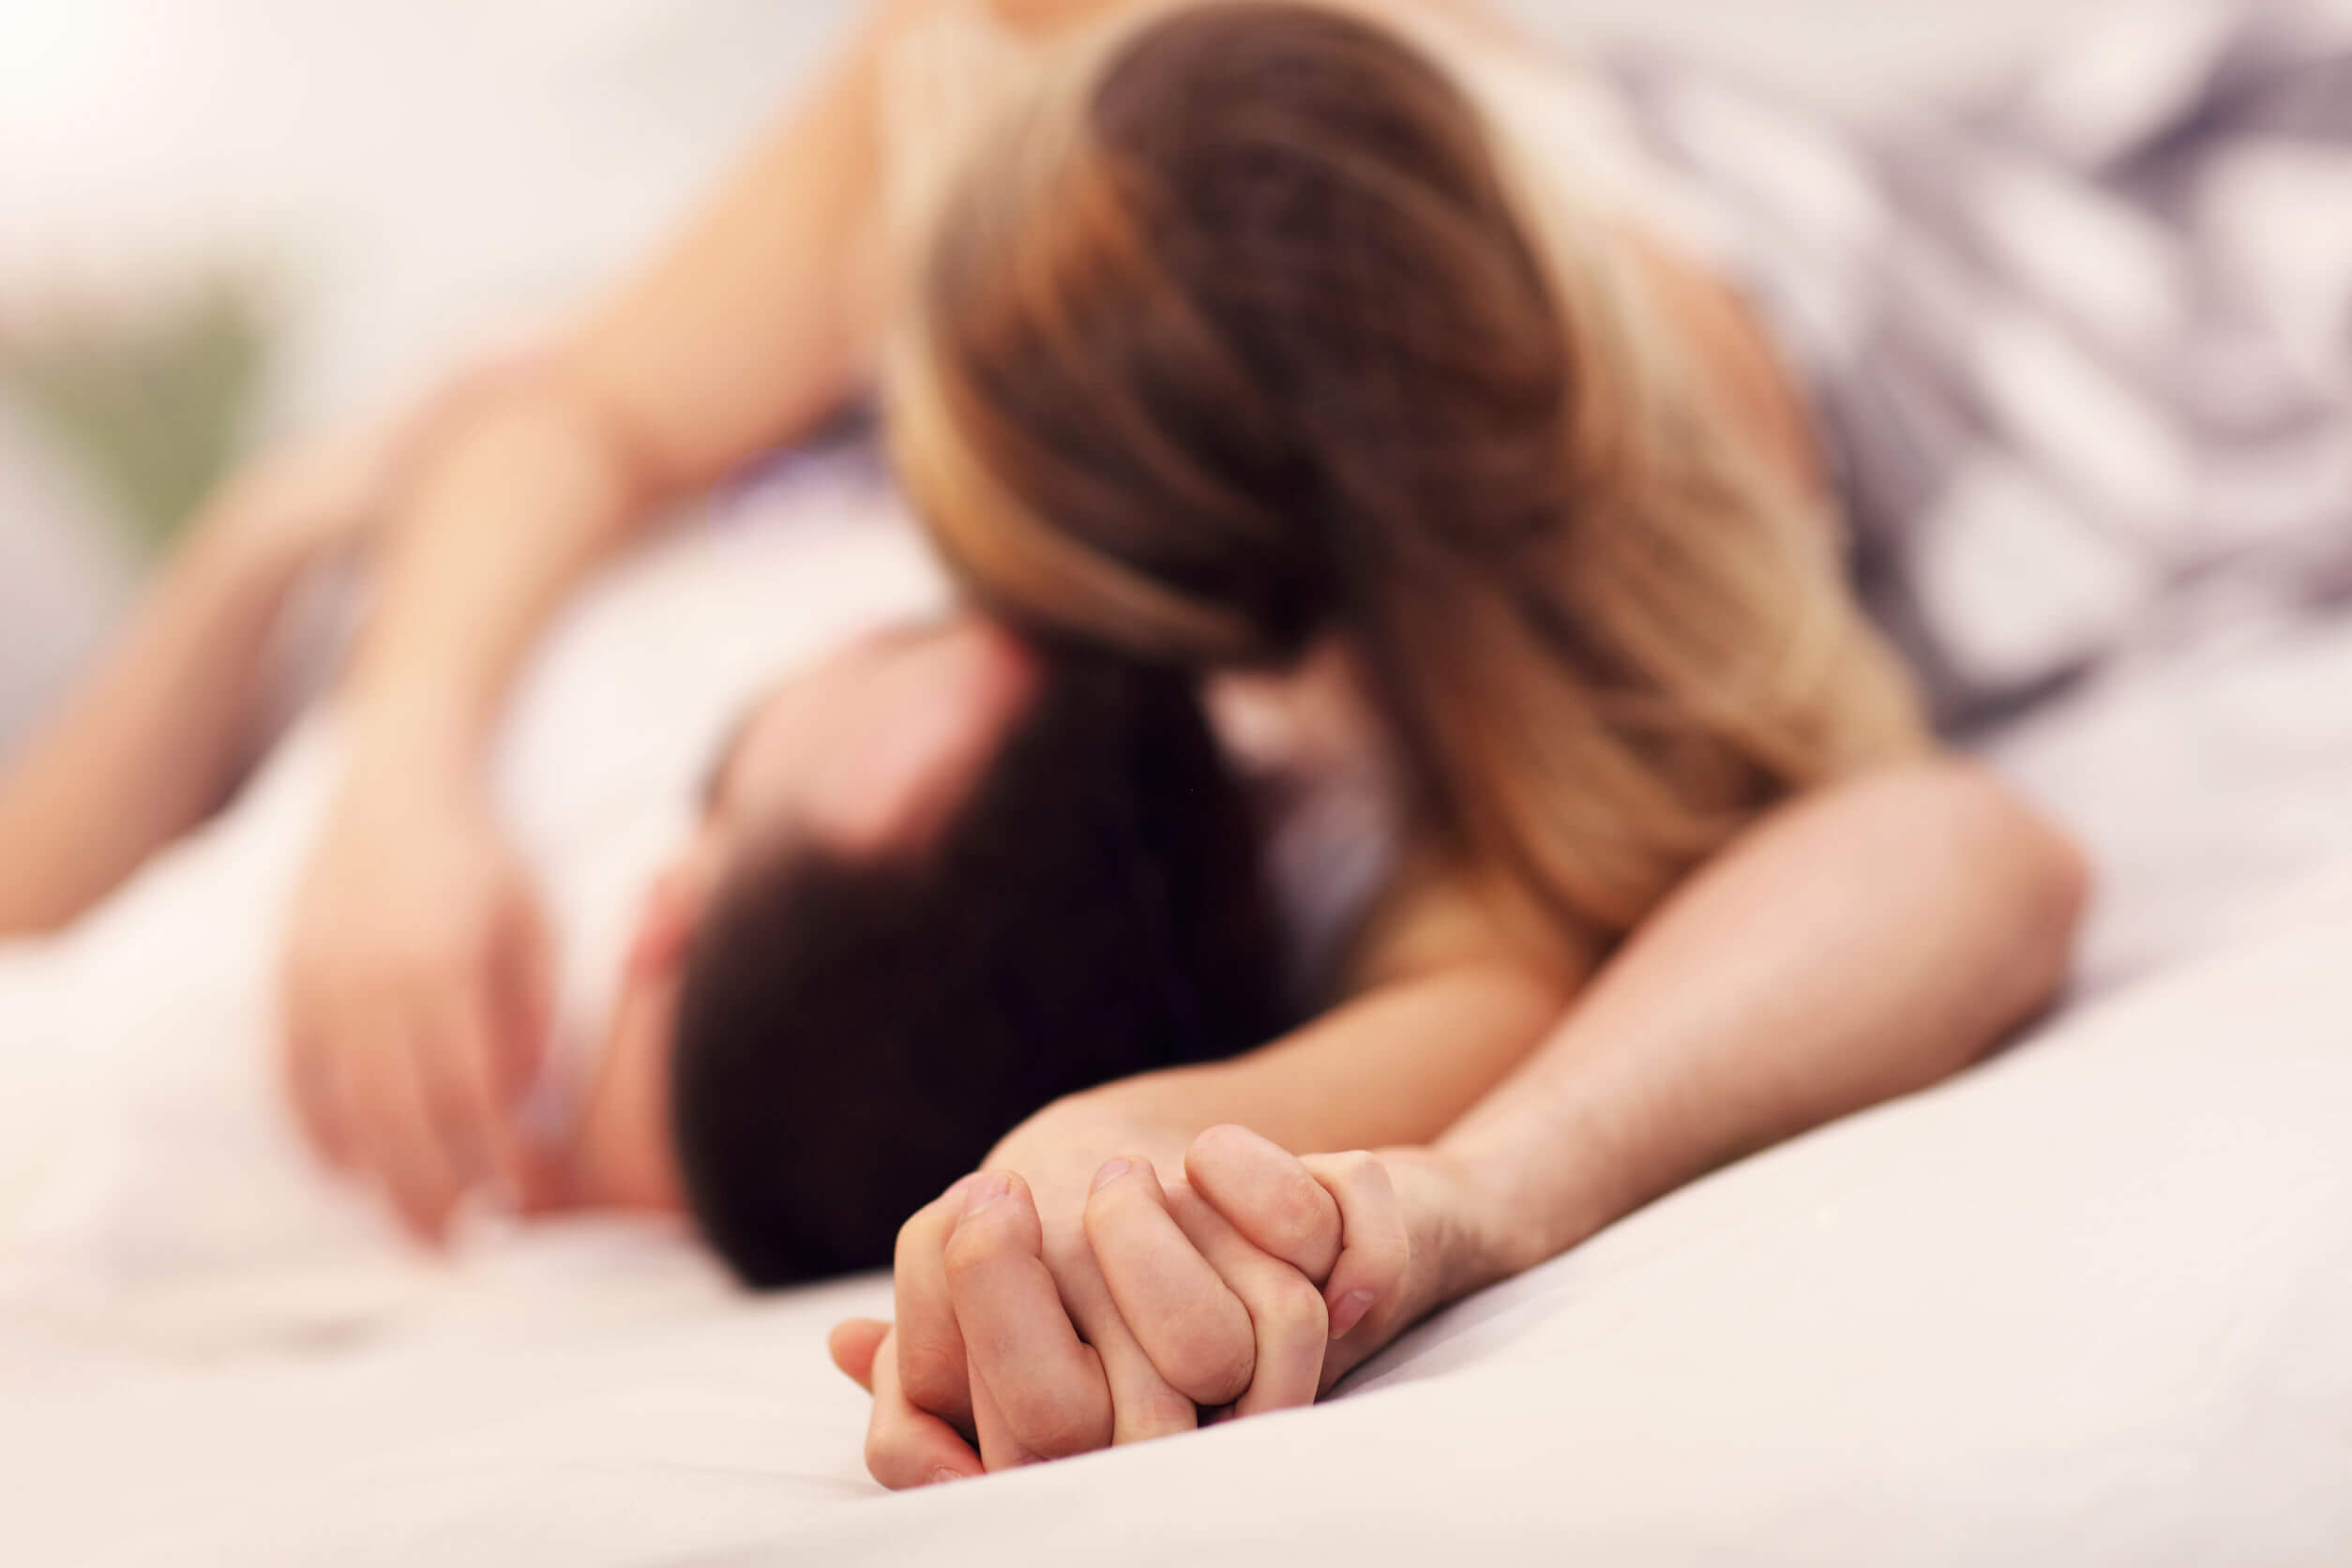 One of the main myths of sexuality is about the benefits of oral sex.